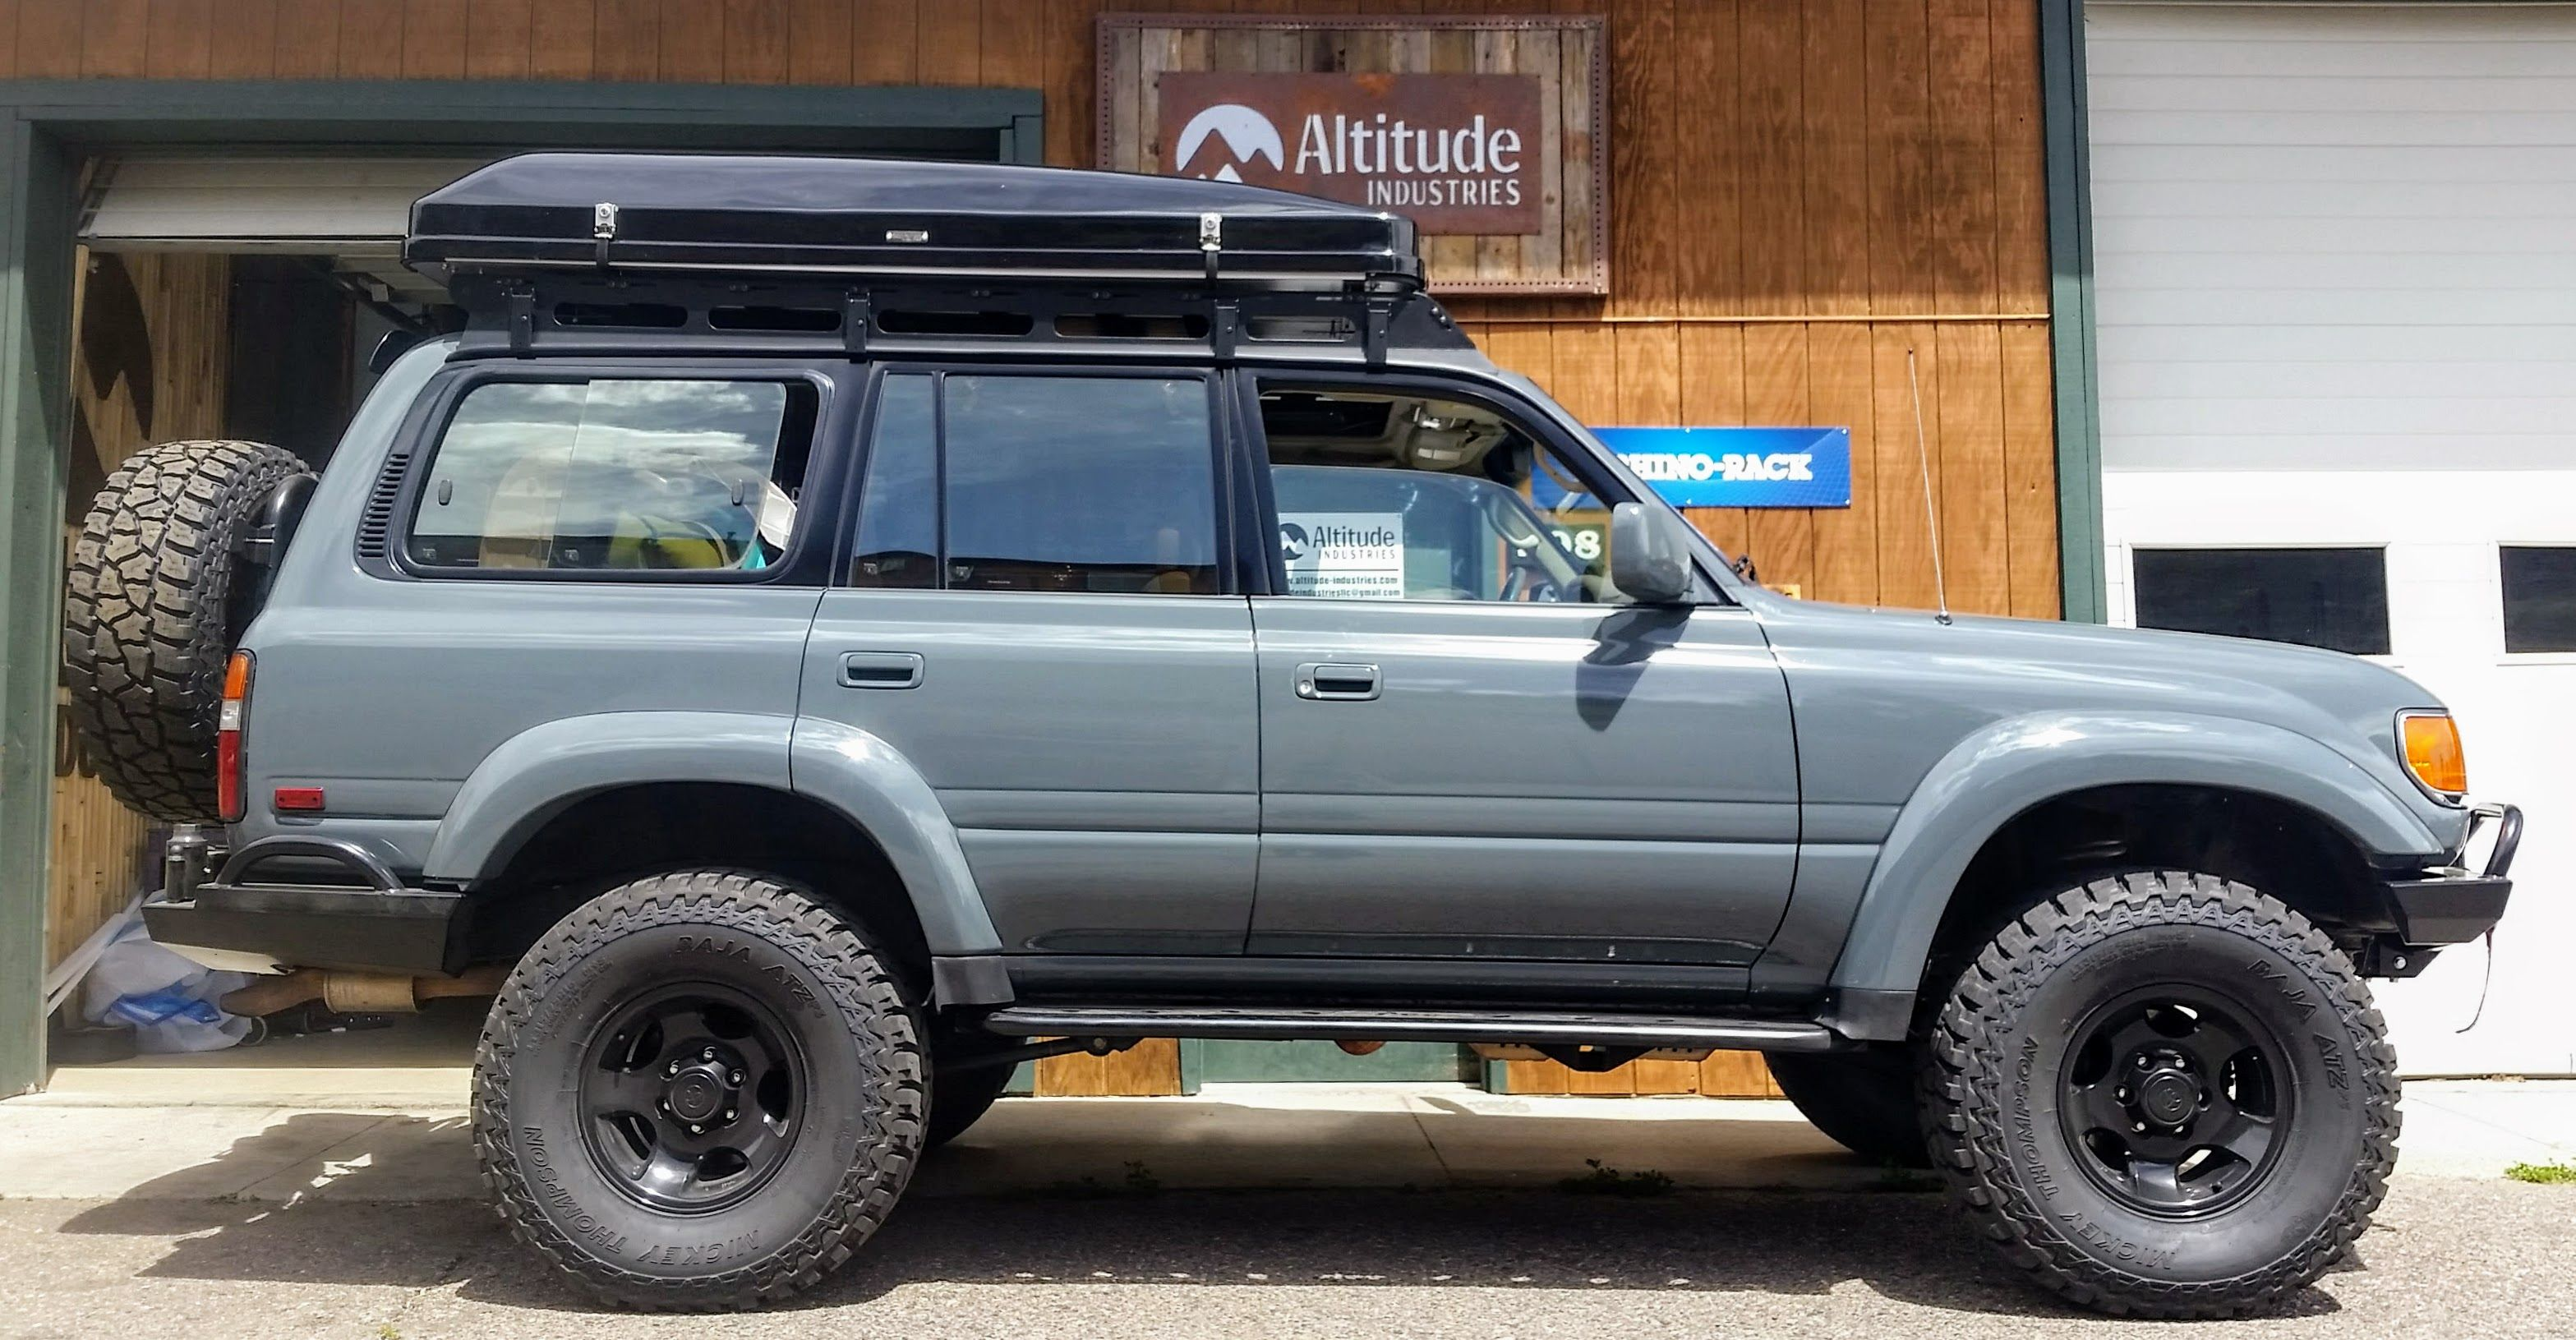 Amazing Restored Land Cruiser With A Brand New Ikamper Skycamp Rooftop Tent Ready For Adventure Land Cruiser Overland Gear Toyota Suv